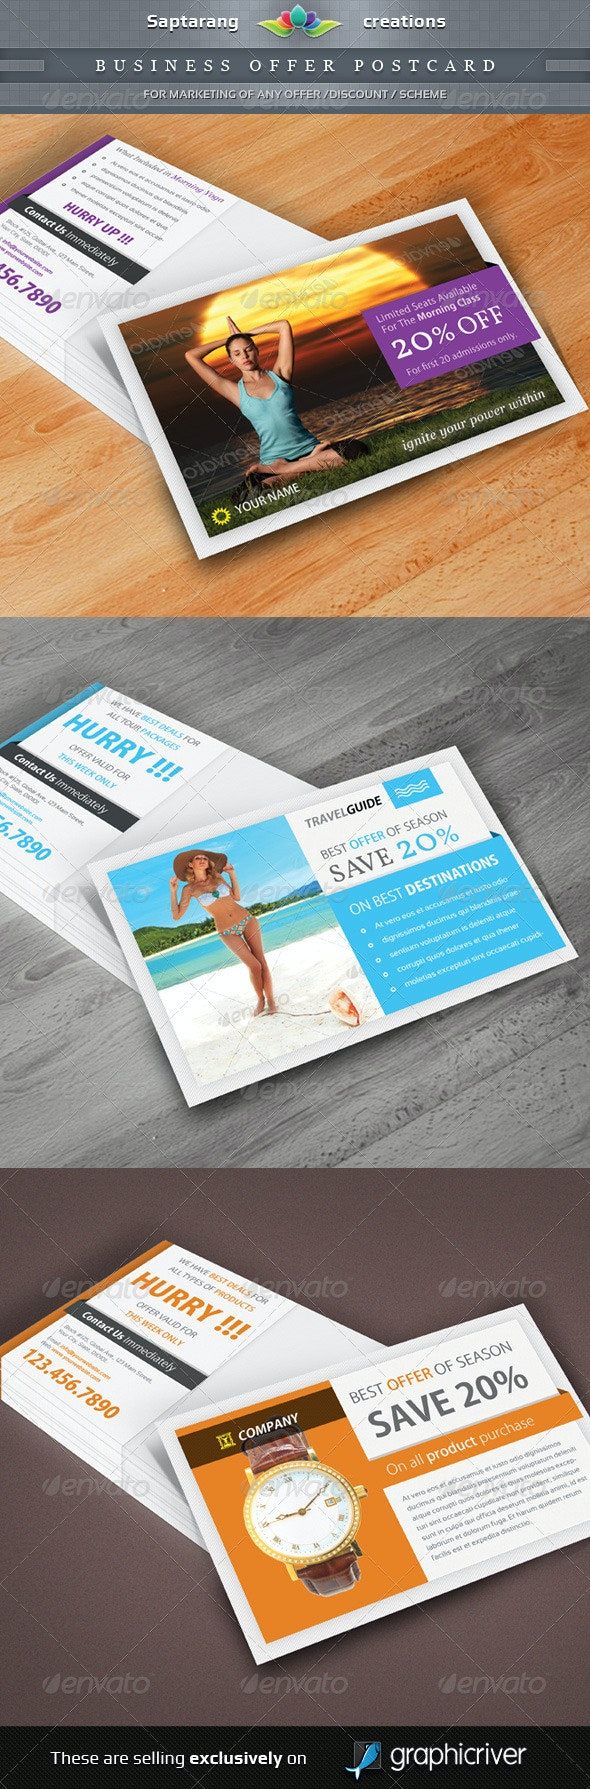 Business Offer Postcard - Stationery Print Templates